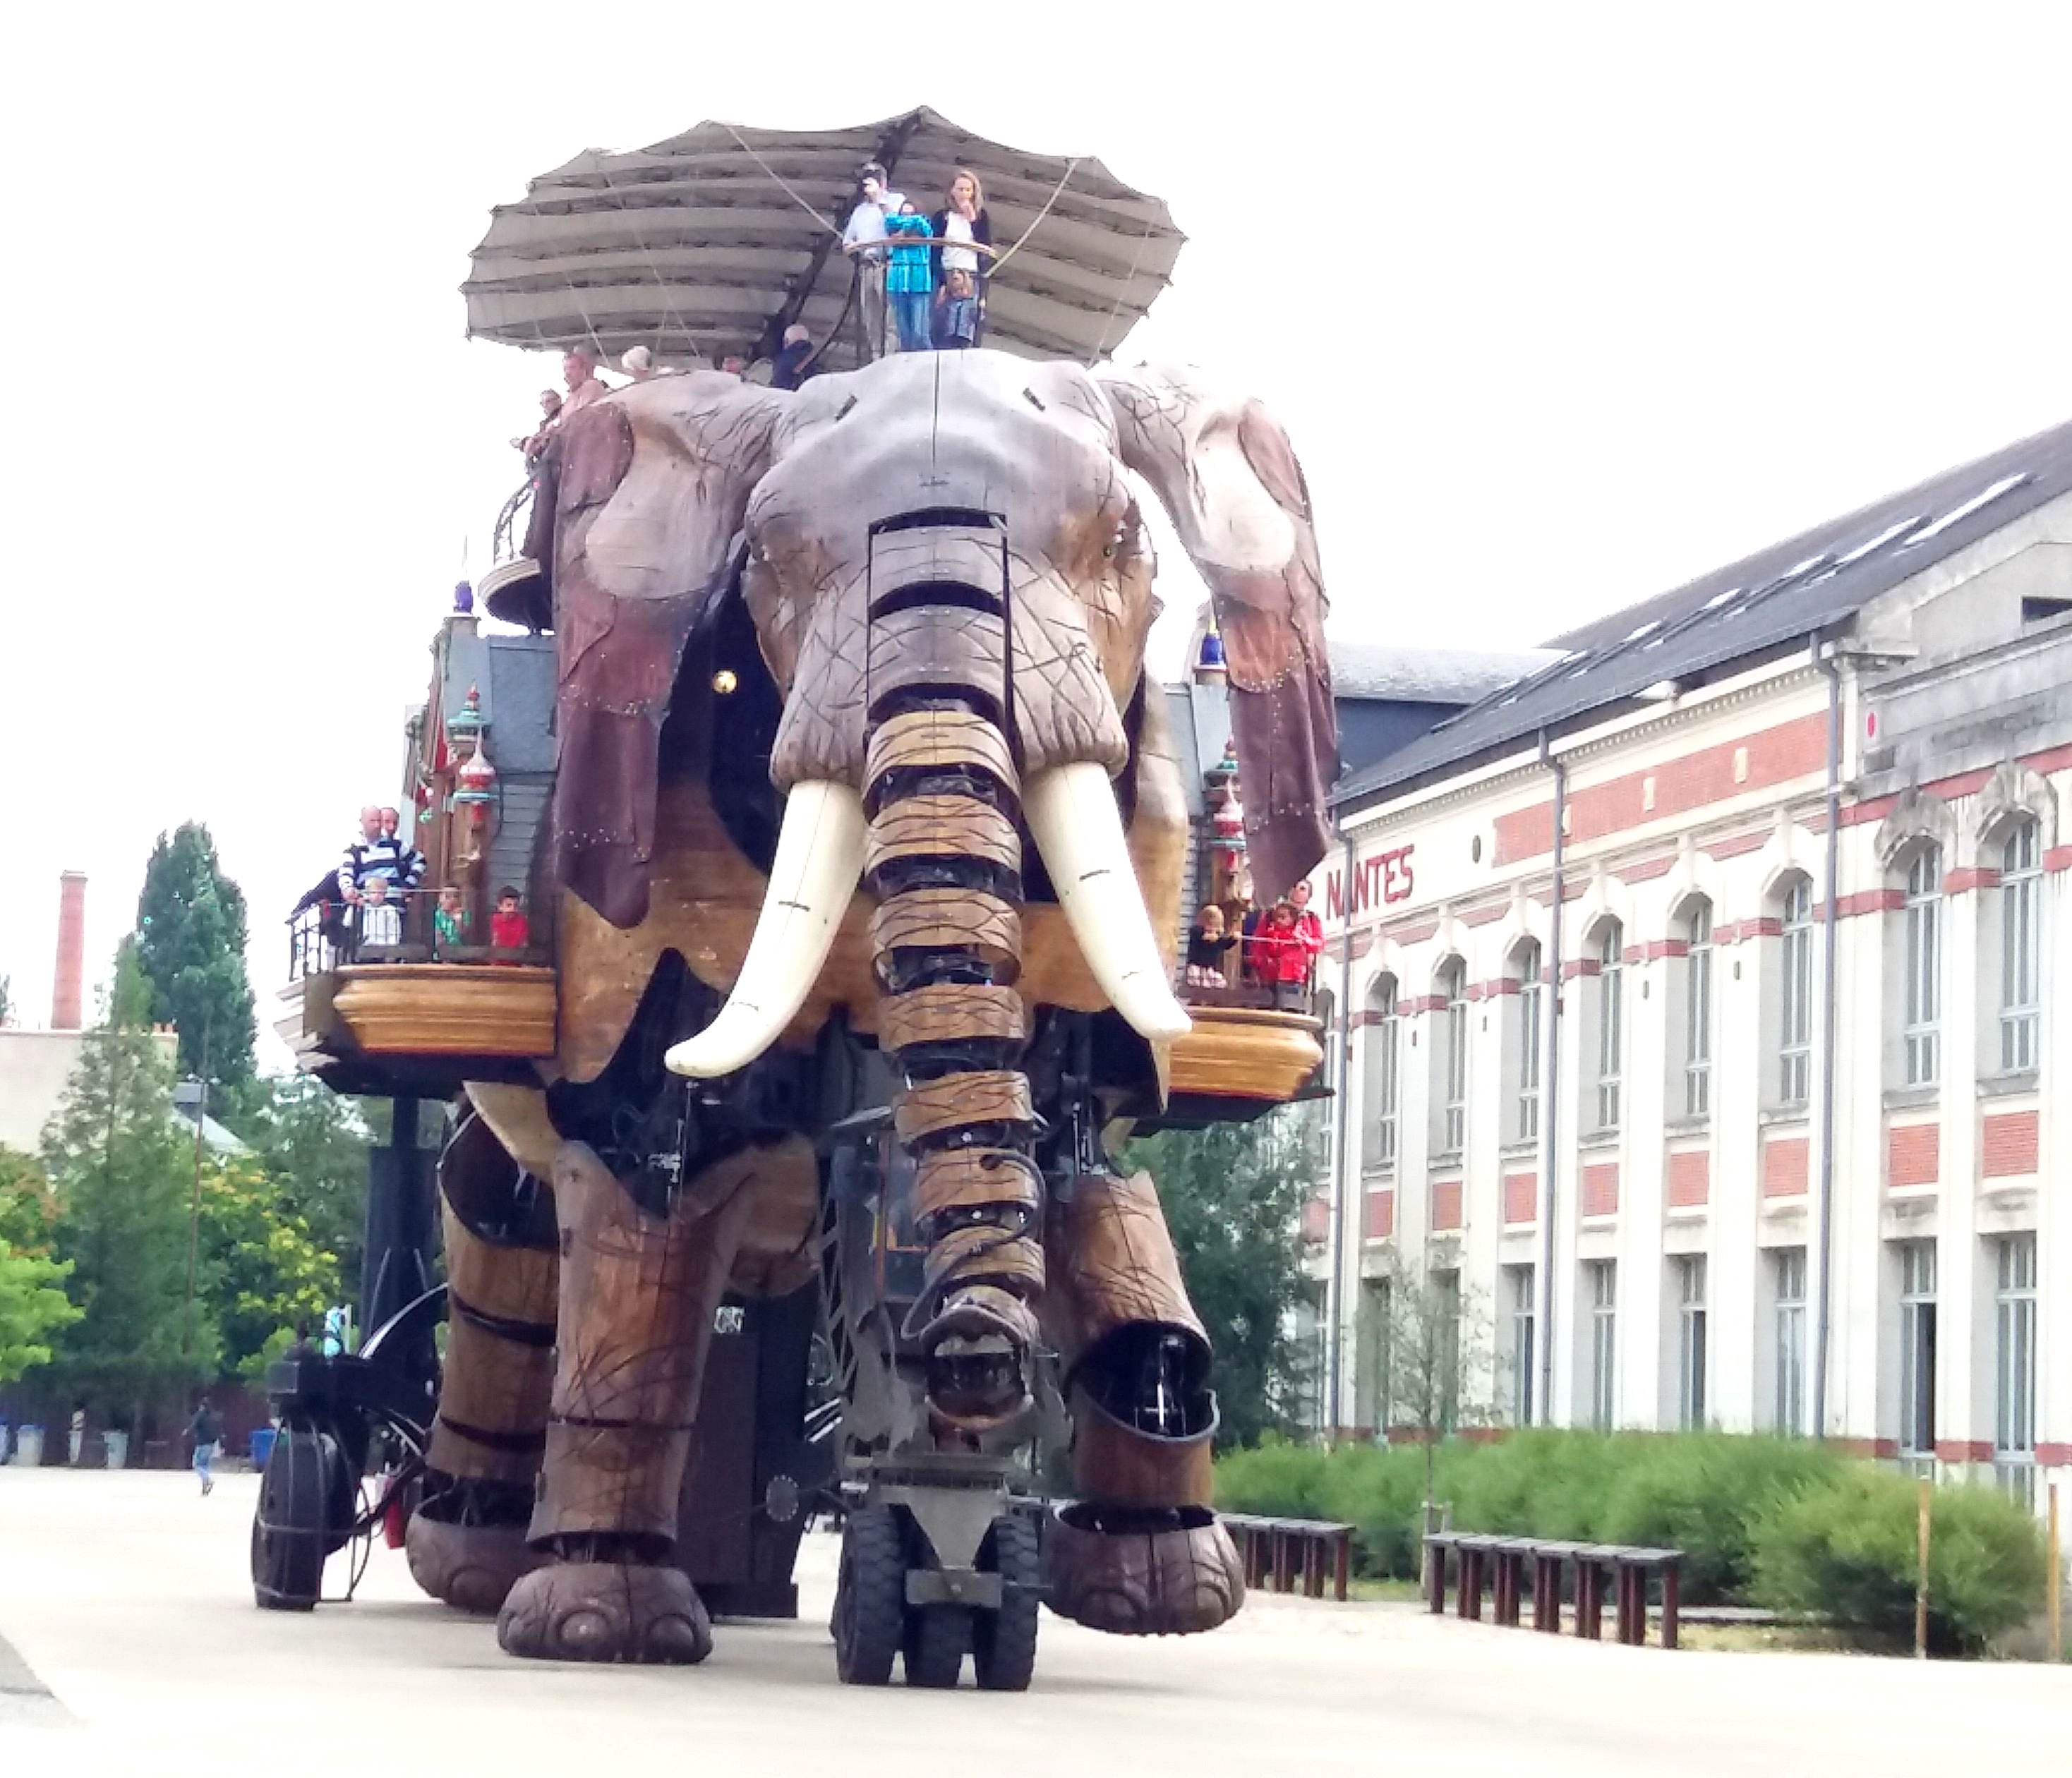 elephant-mecanique-a-nantes